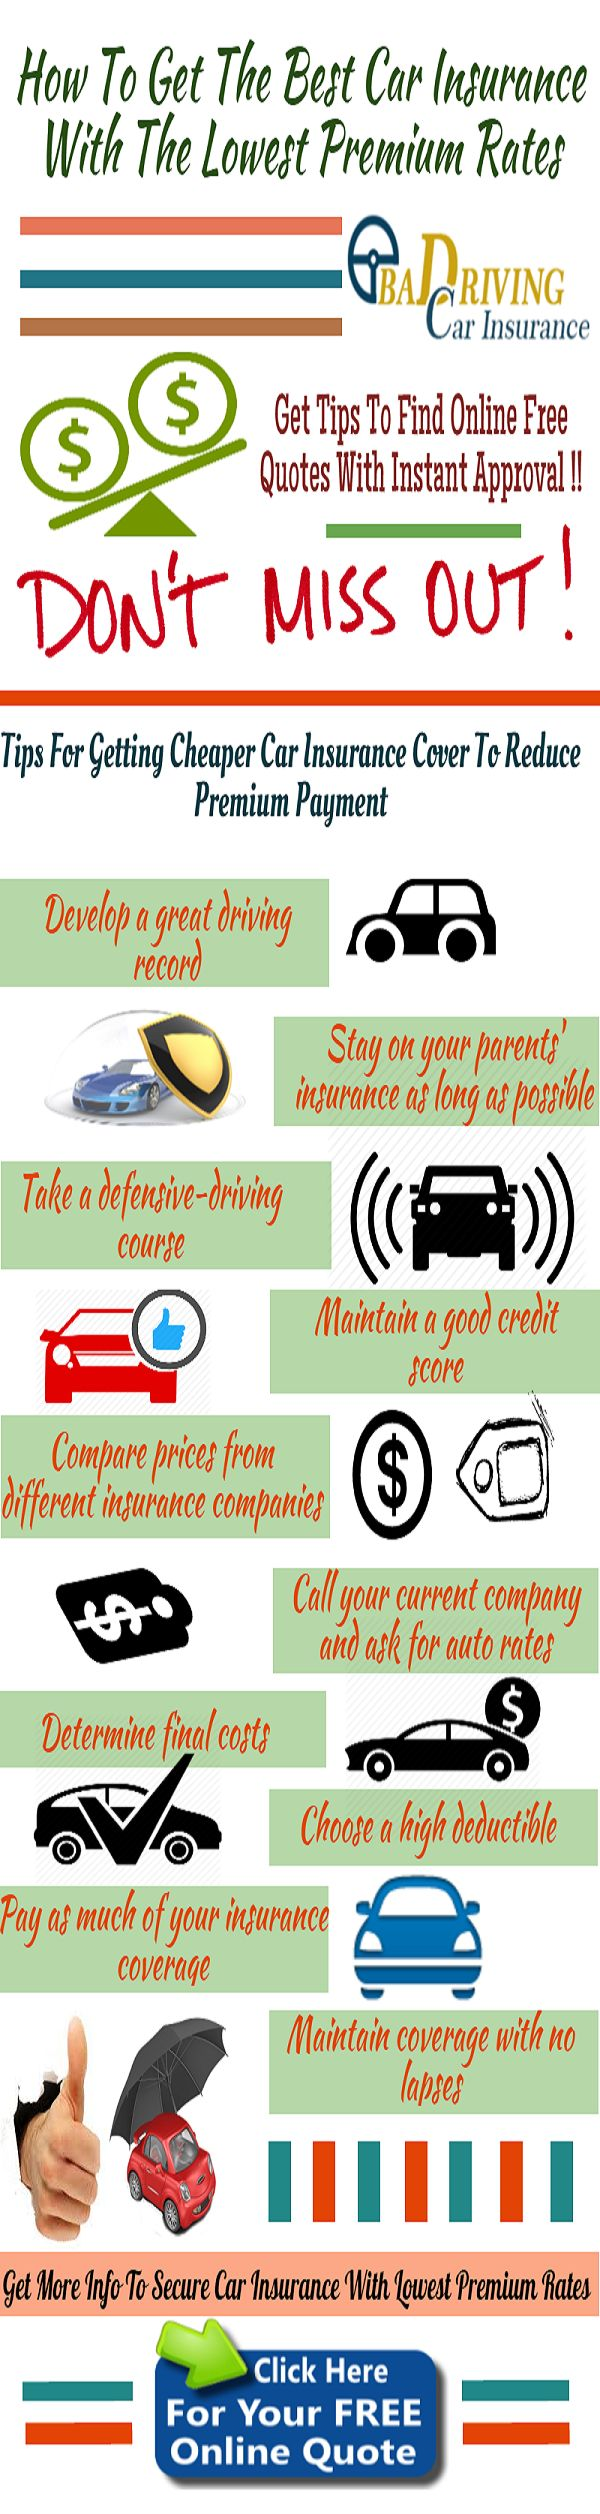 Car Insurance Free Quote Enchanting 9 Best Carauto Insurance Infographic Images On Pinterest